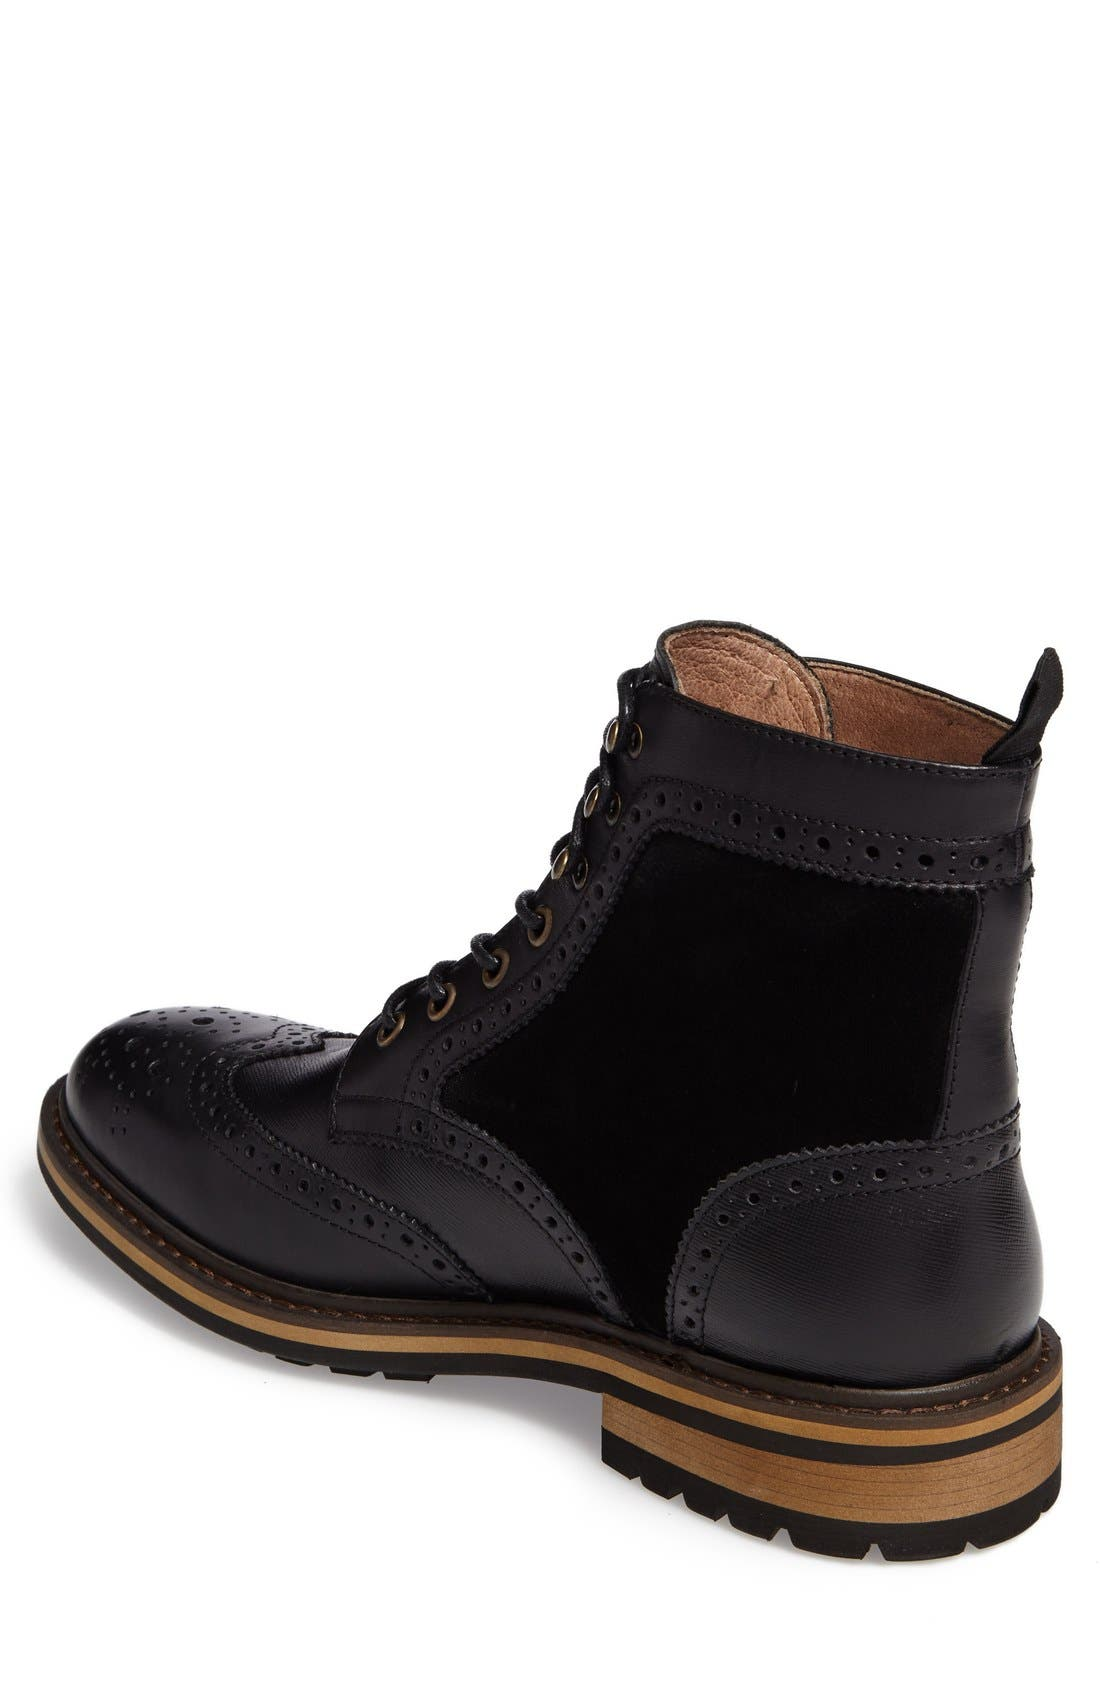 Grange Wingtip Boot,                             Alternate thumbnail 7, color,                             001